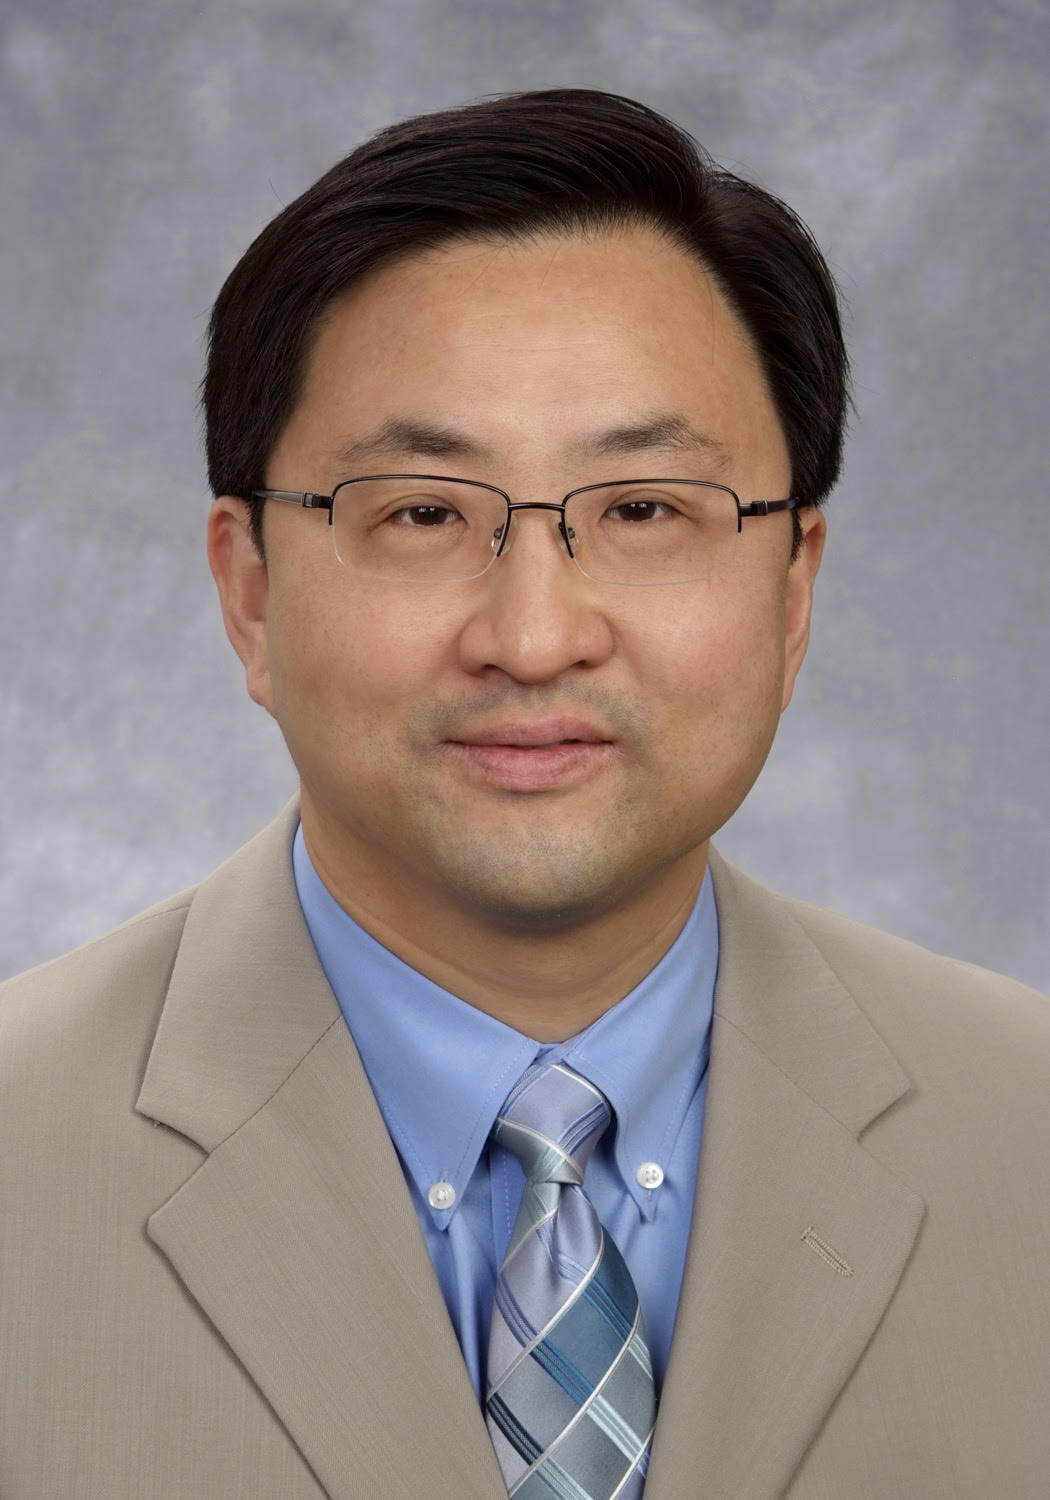 Dr. Youngsoo Cho